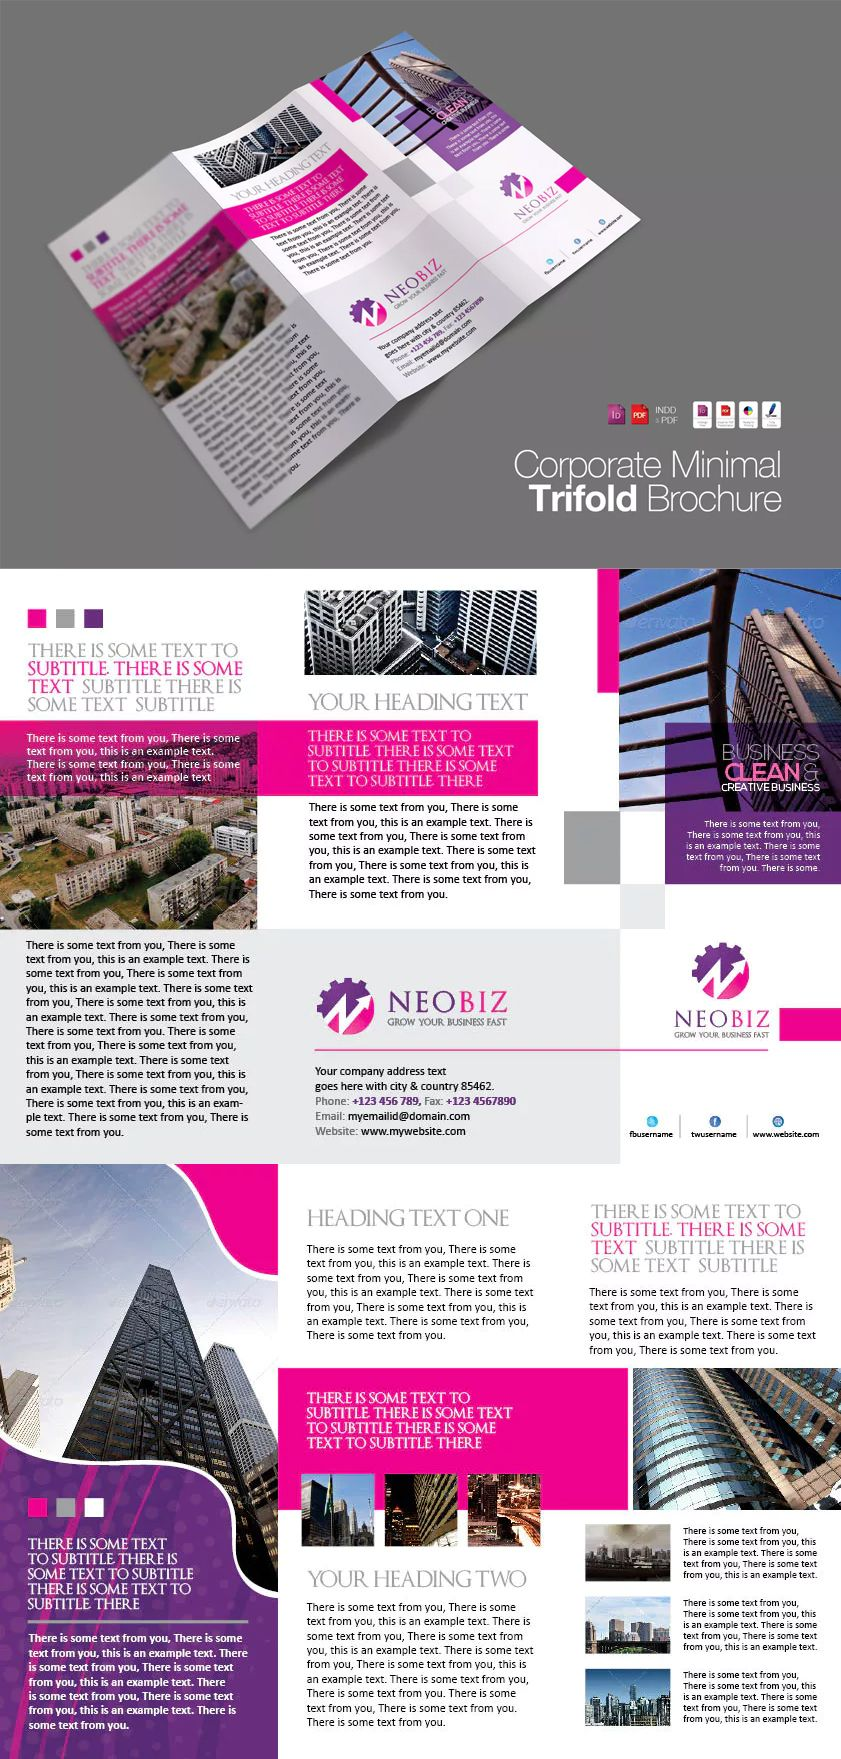 Trifold Clean Brochure Template InDesign INDD | Graphics | Pinterest